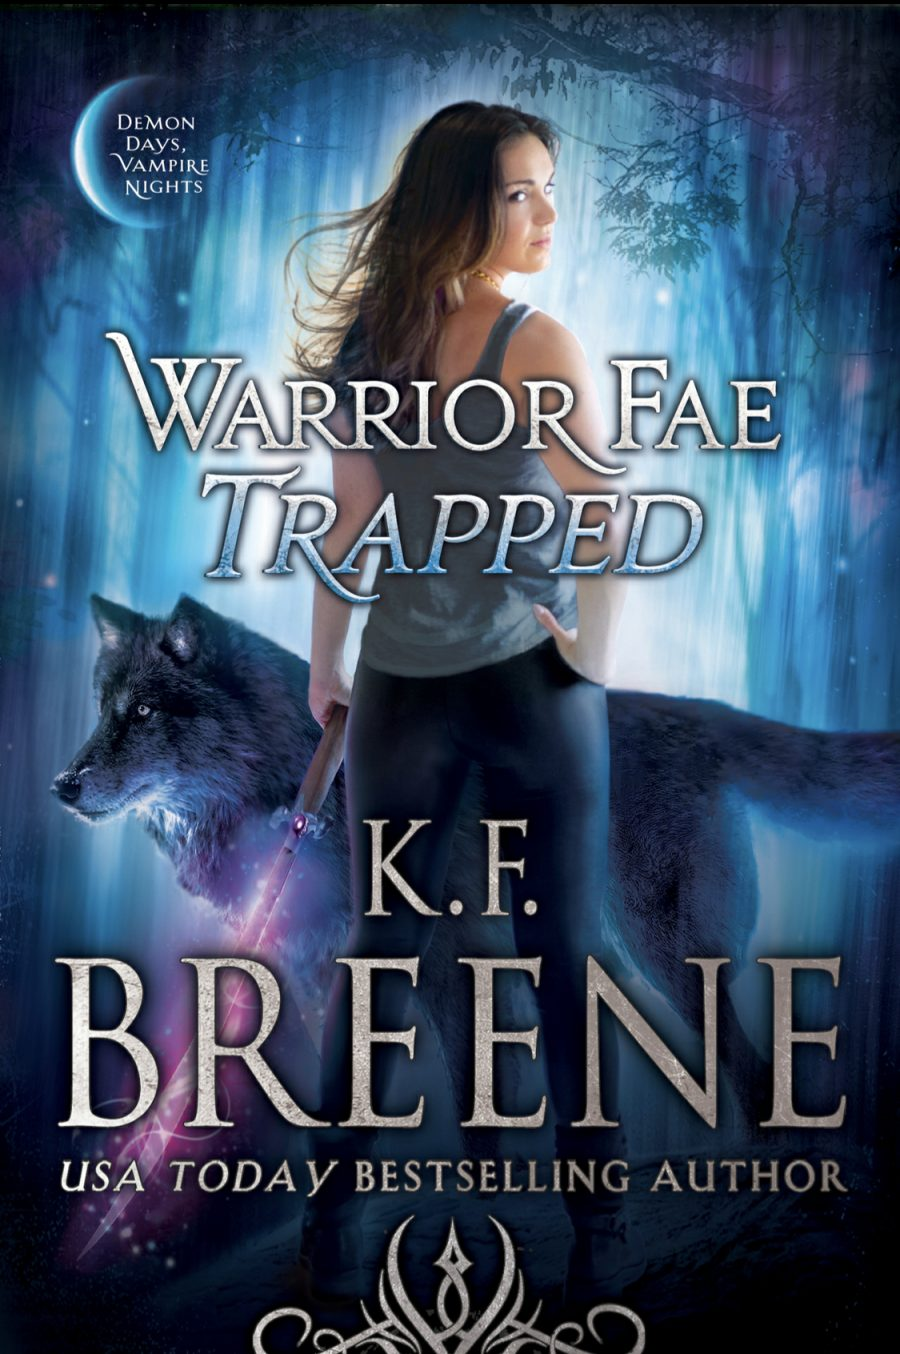 Warrior Fae Trapped by K.F. Breene - A Book Review #BookReview #UrbanFantasy #UF #DDVN #Book7 #NewRelease #4Stars #KindleUnlimited #KU